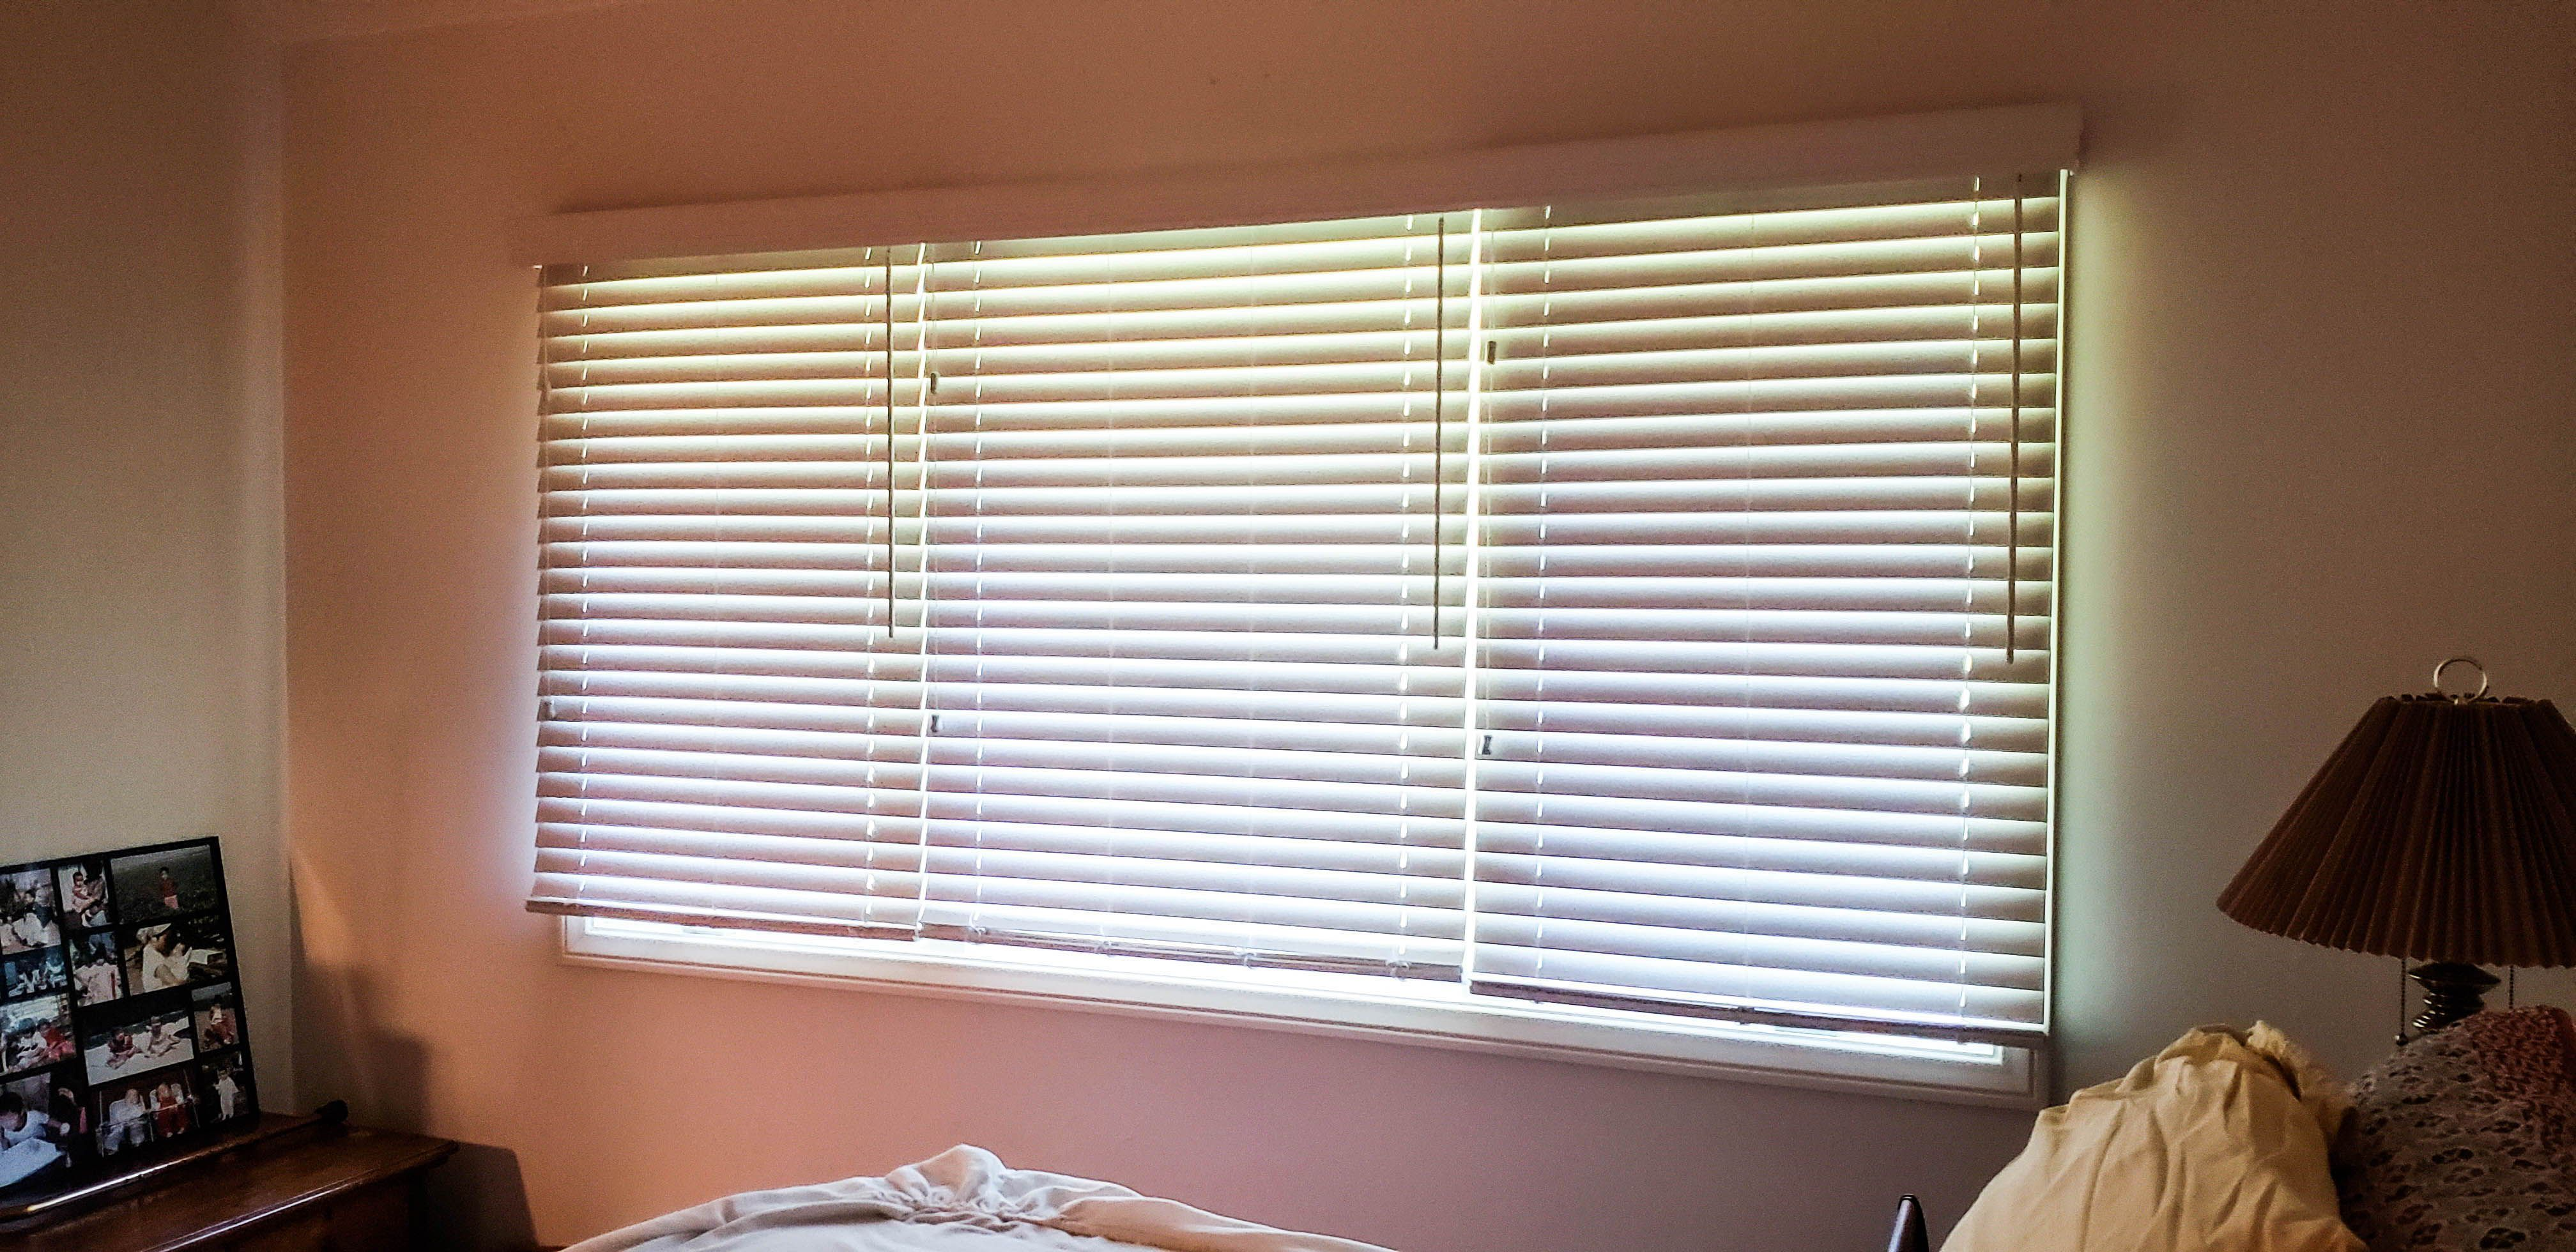 Pin By Camilla Brooks On Best Home Improvements Suggestions Wood Blinds Faux Wood Blinds Blinds